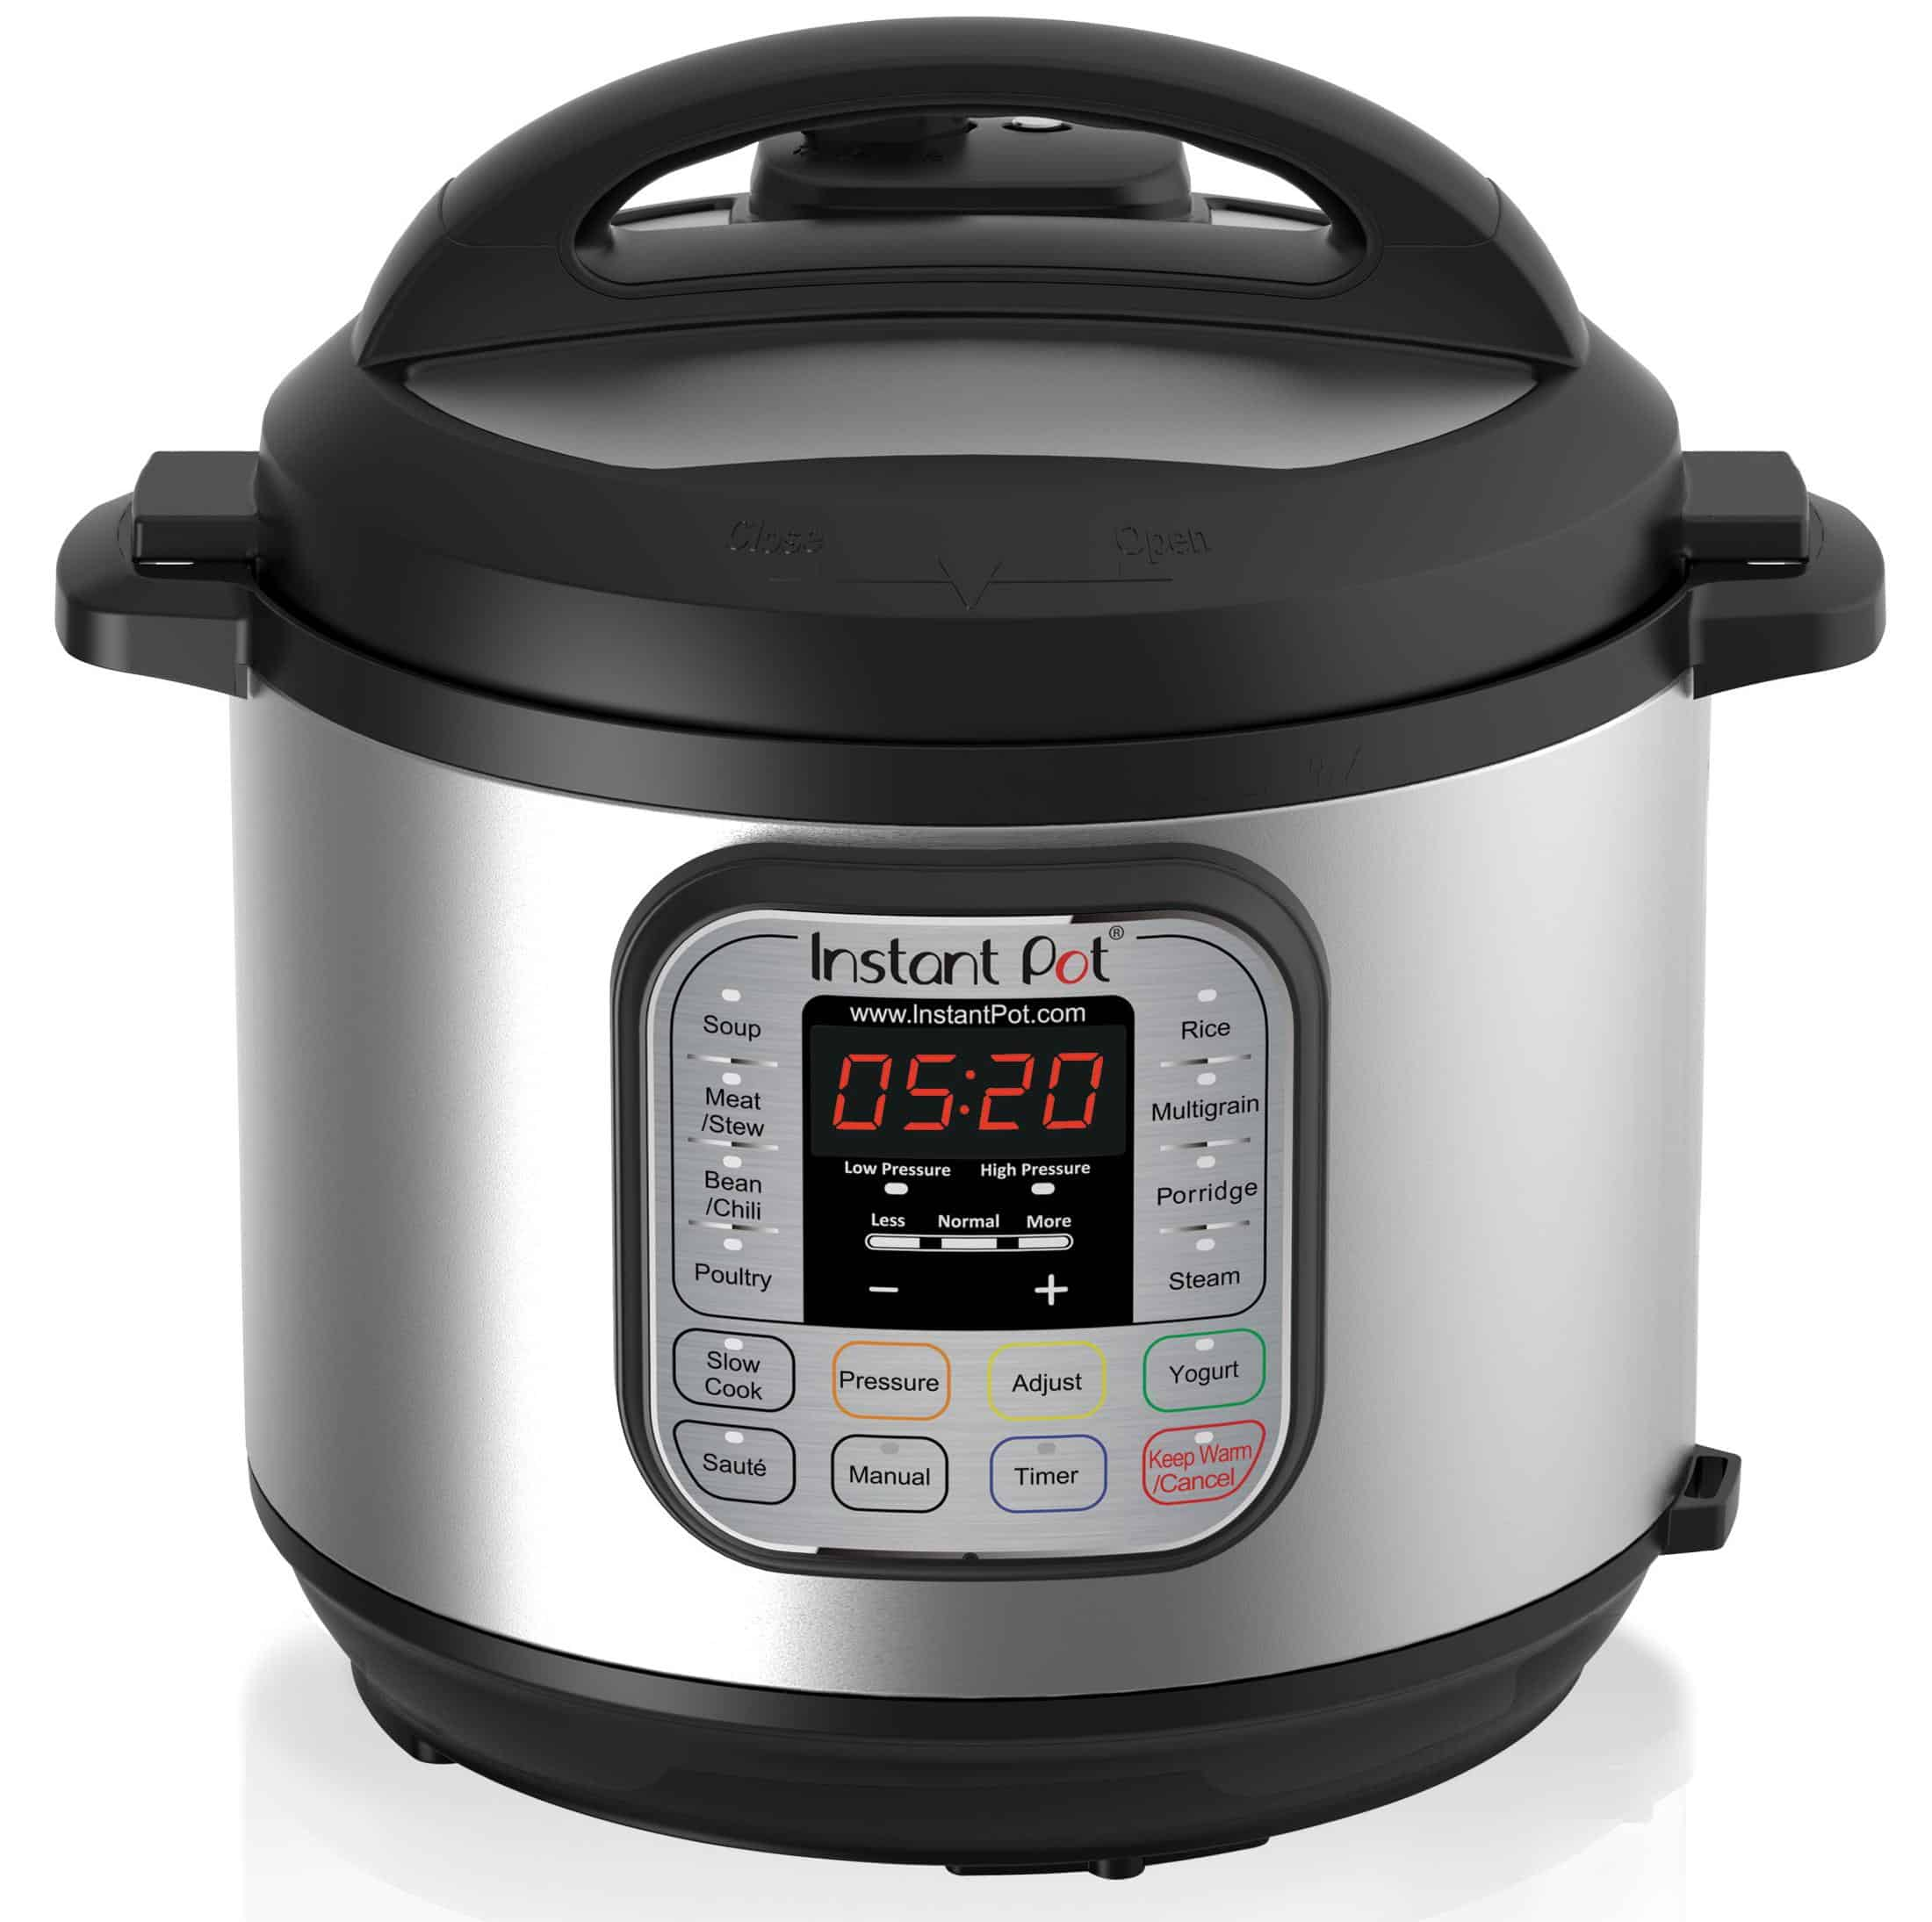 Have you caught on to the Instant Pot pressure cooker craze yet? If you are looking to buy, read my Instant Pot Pressure Cooker review to find out if you really need one.